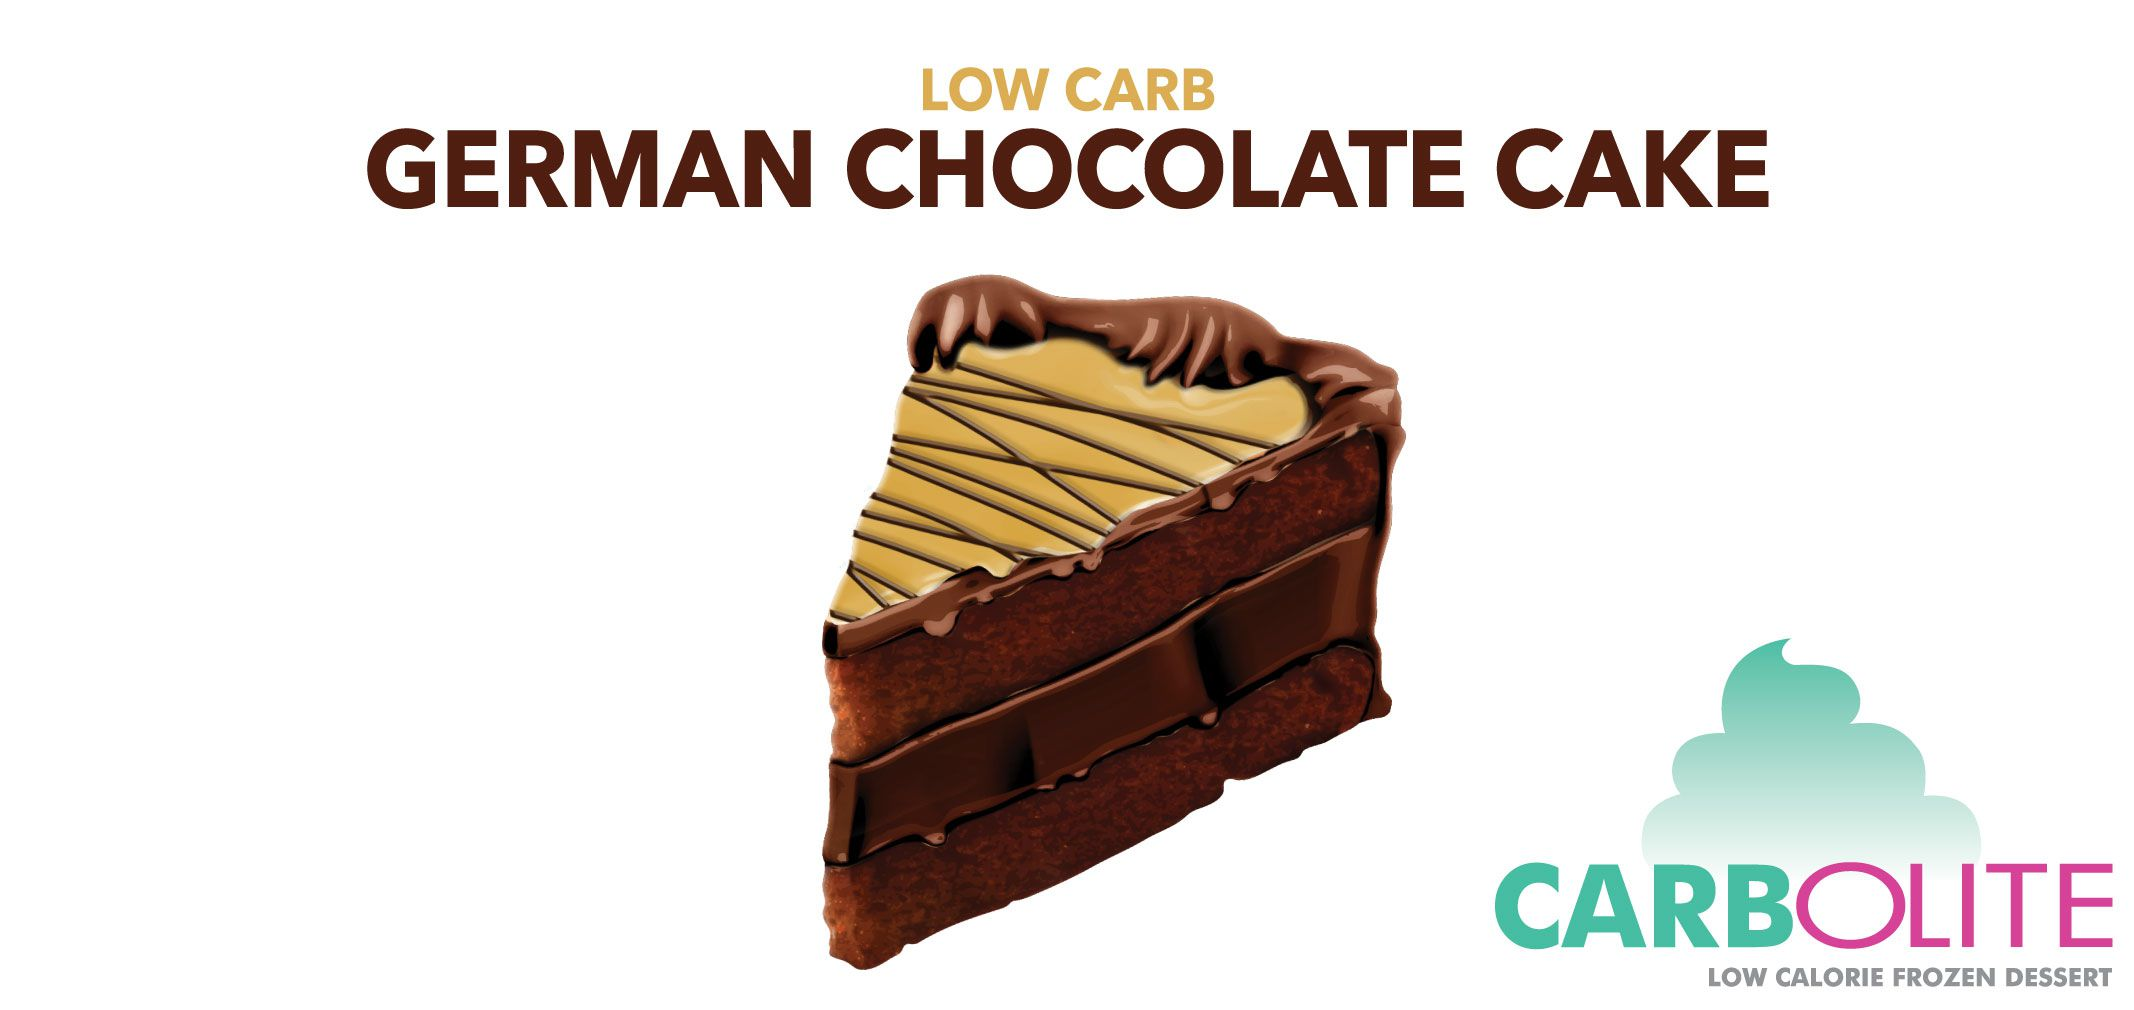 carbolite low carb no sugar added german chocolate cake  label image